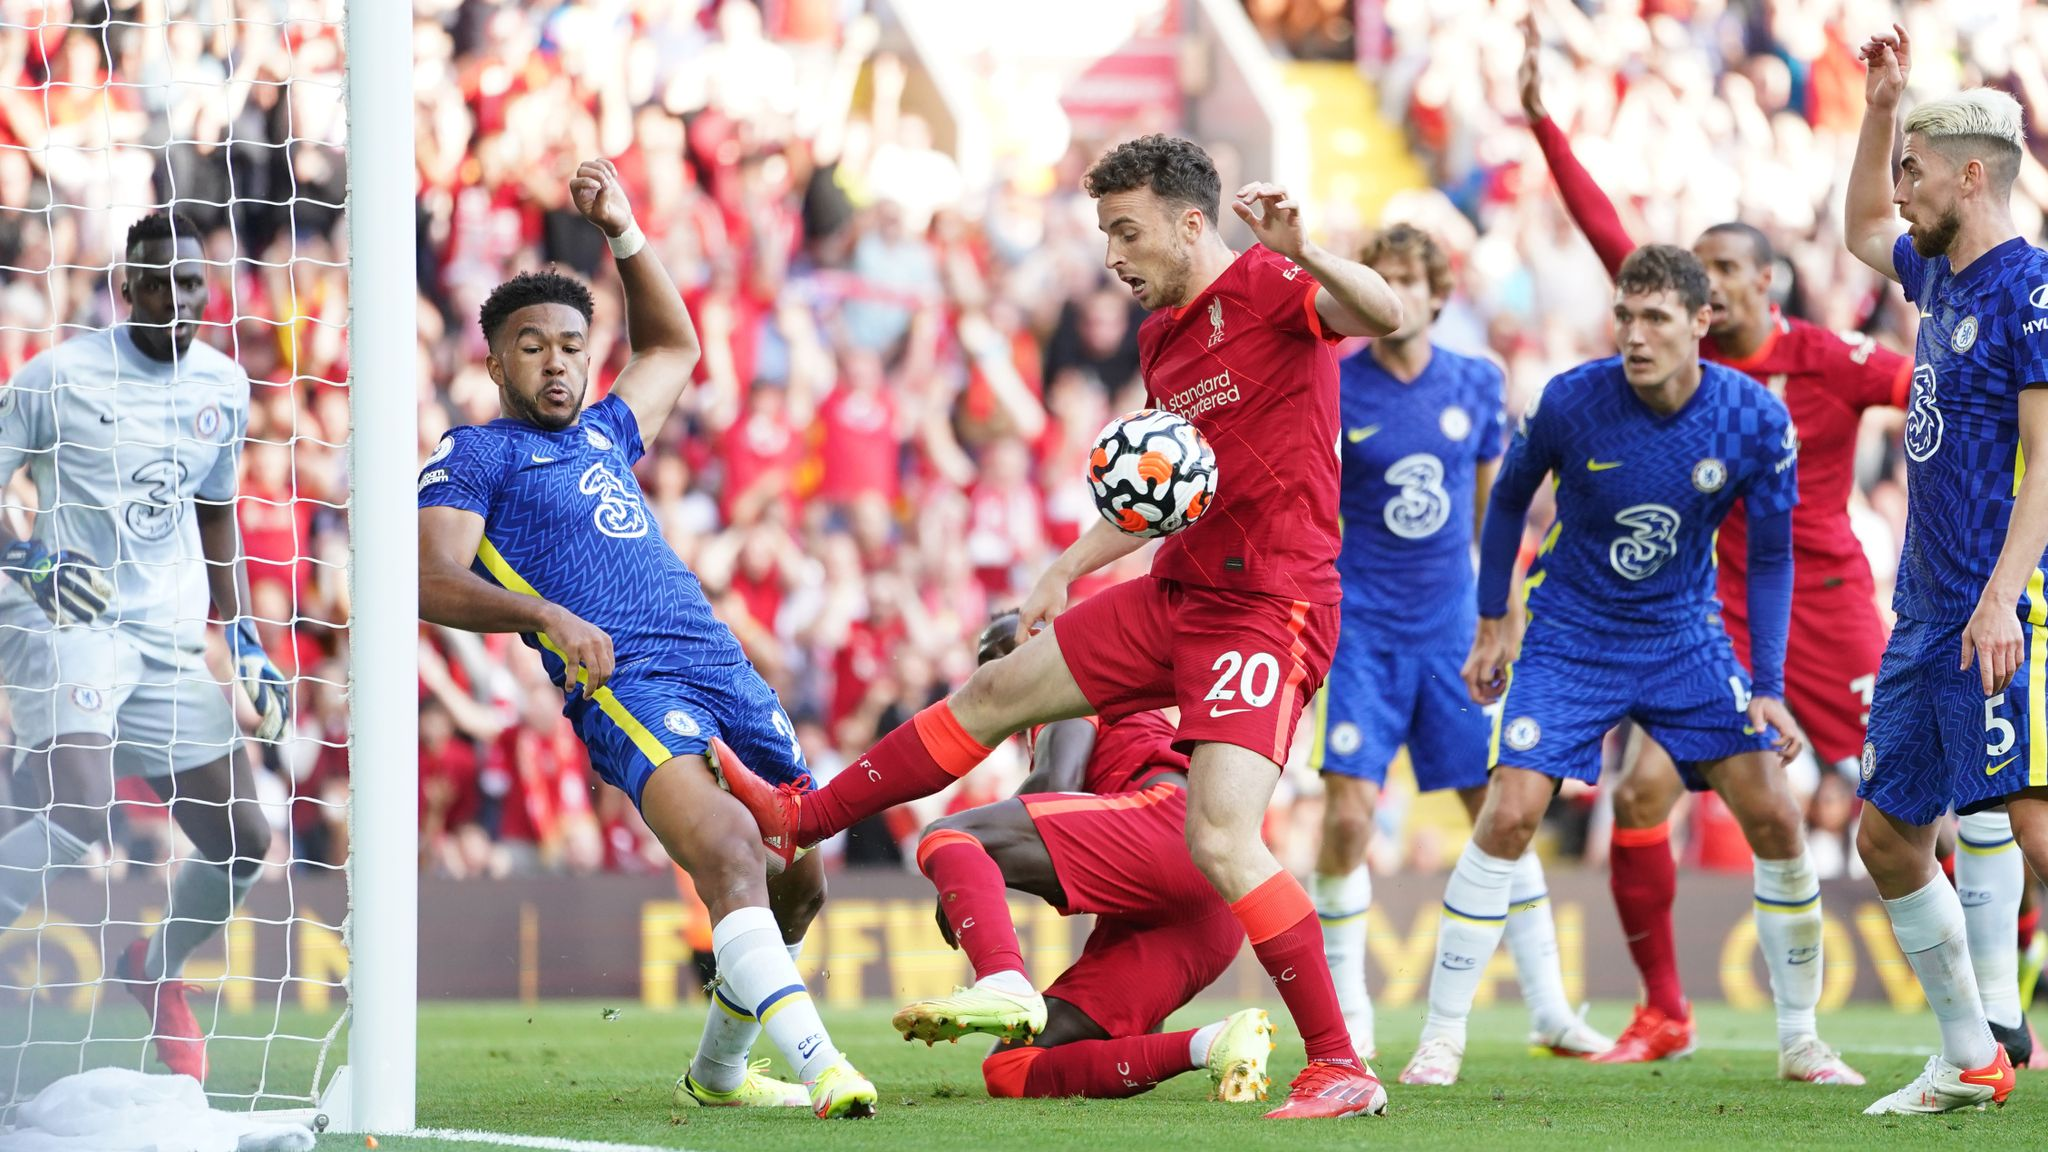 Liverpool 1-1 Chelsea: Blues hold out in second half after Reece James' red  card   Football News   Sky Sports